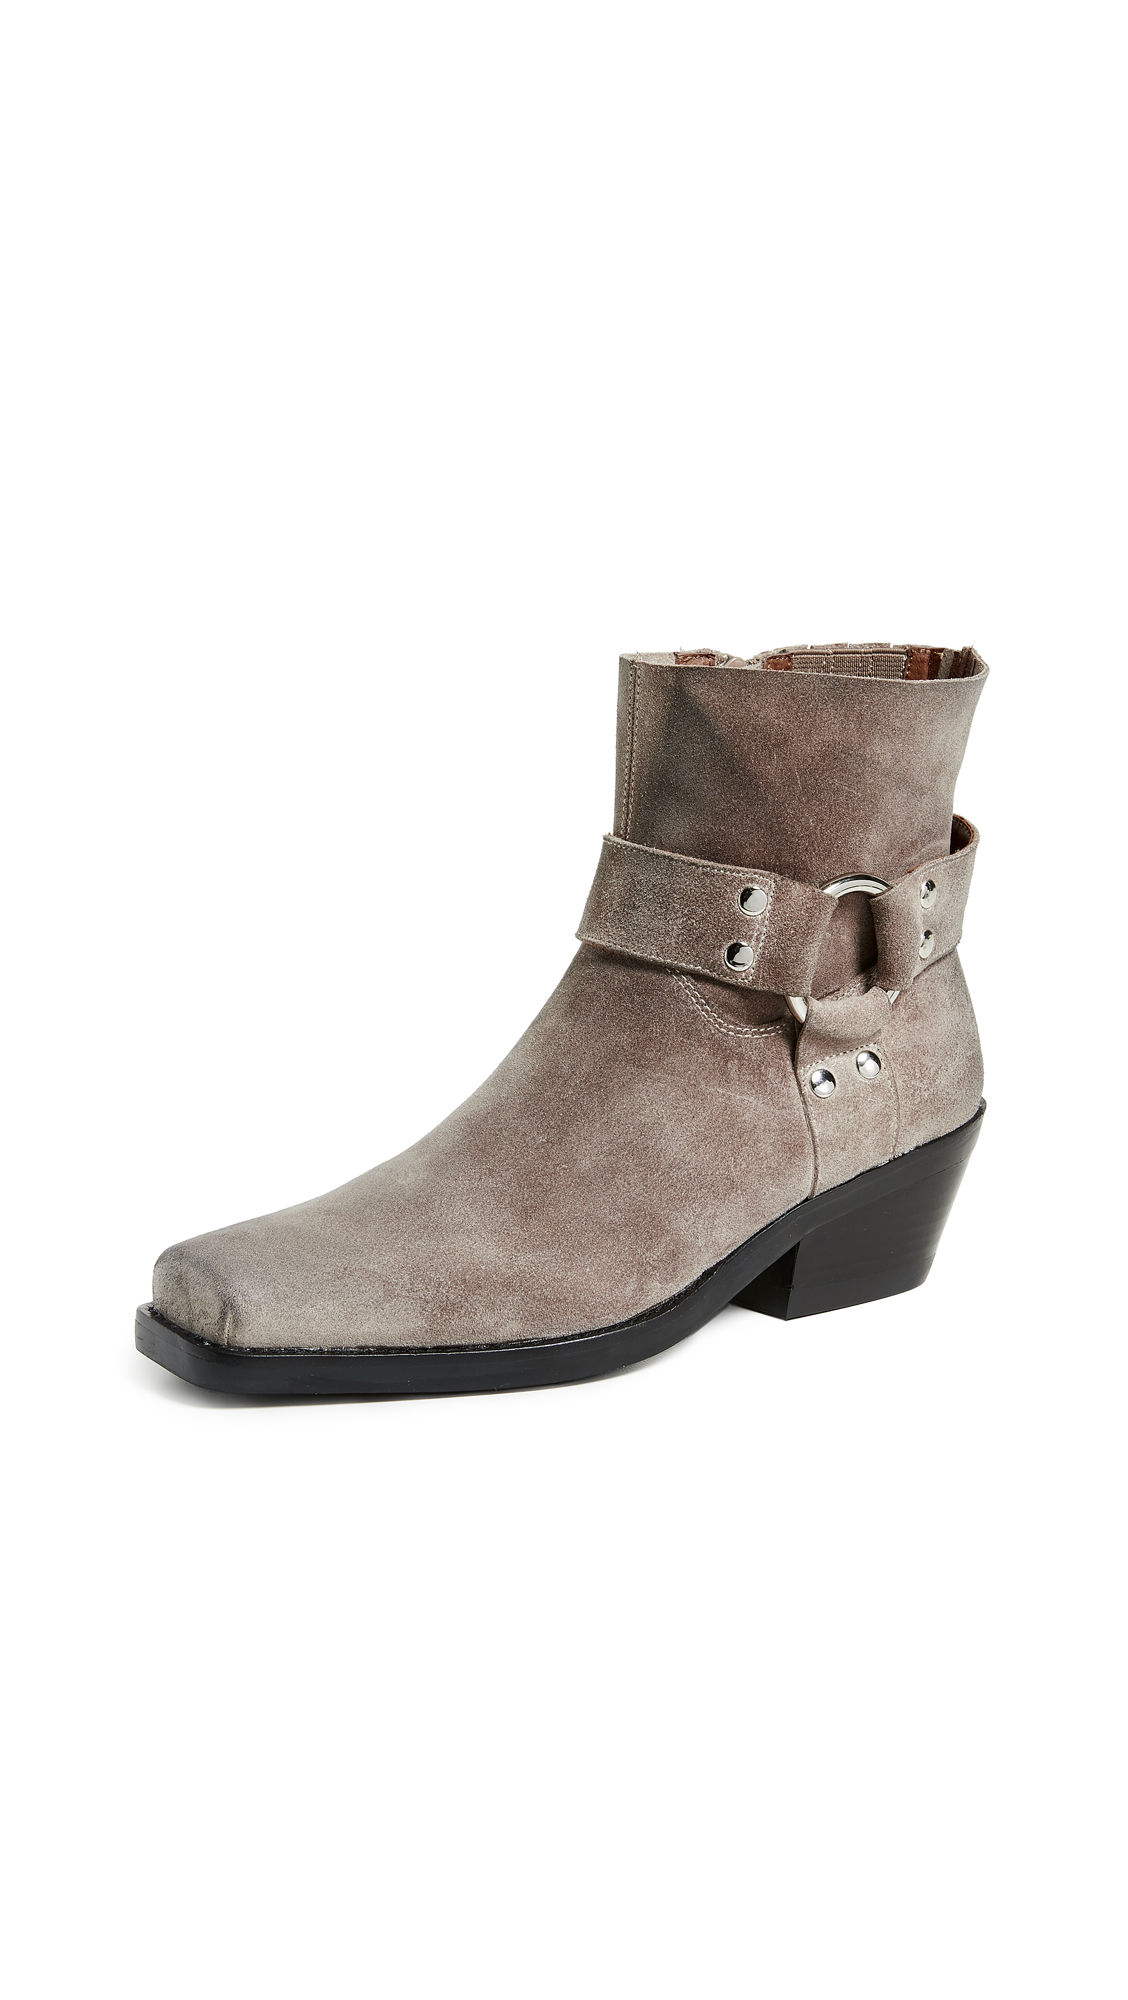 Jeffrey Campbell Farrier Boots - Taupe